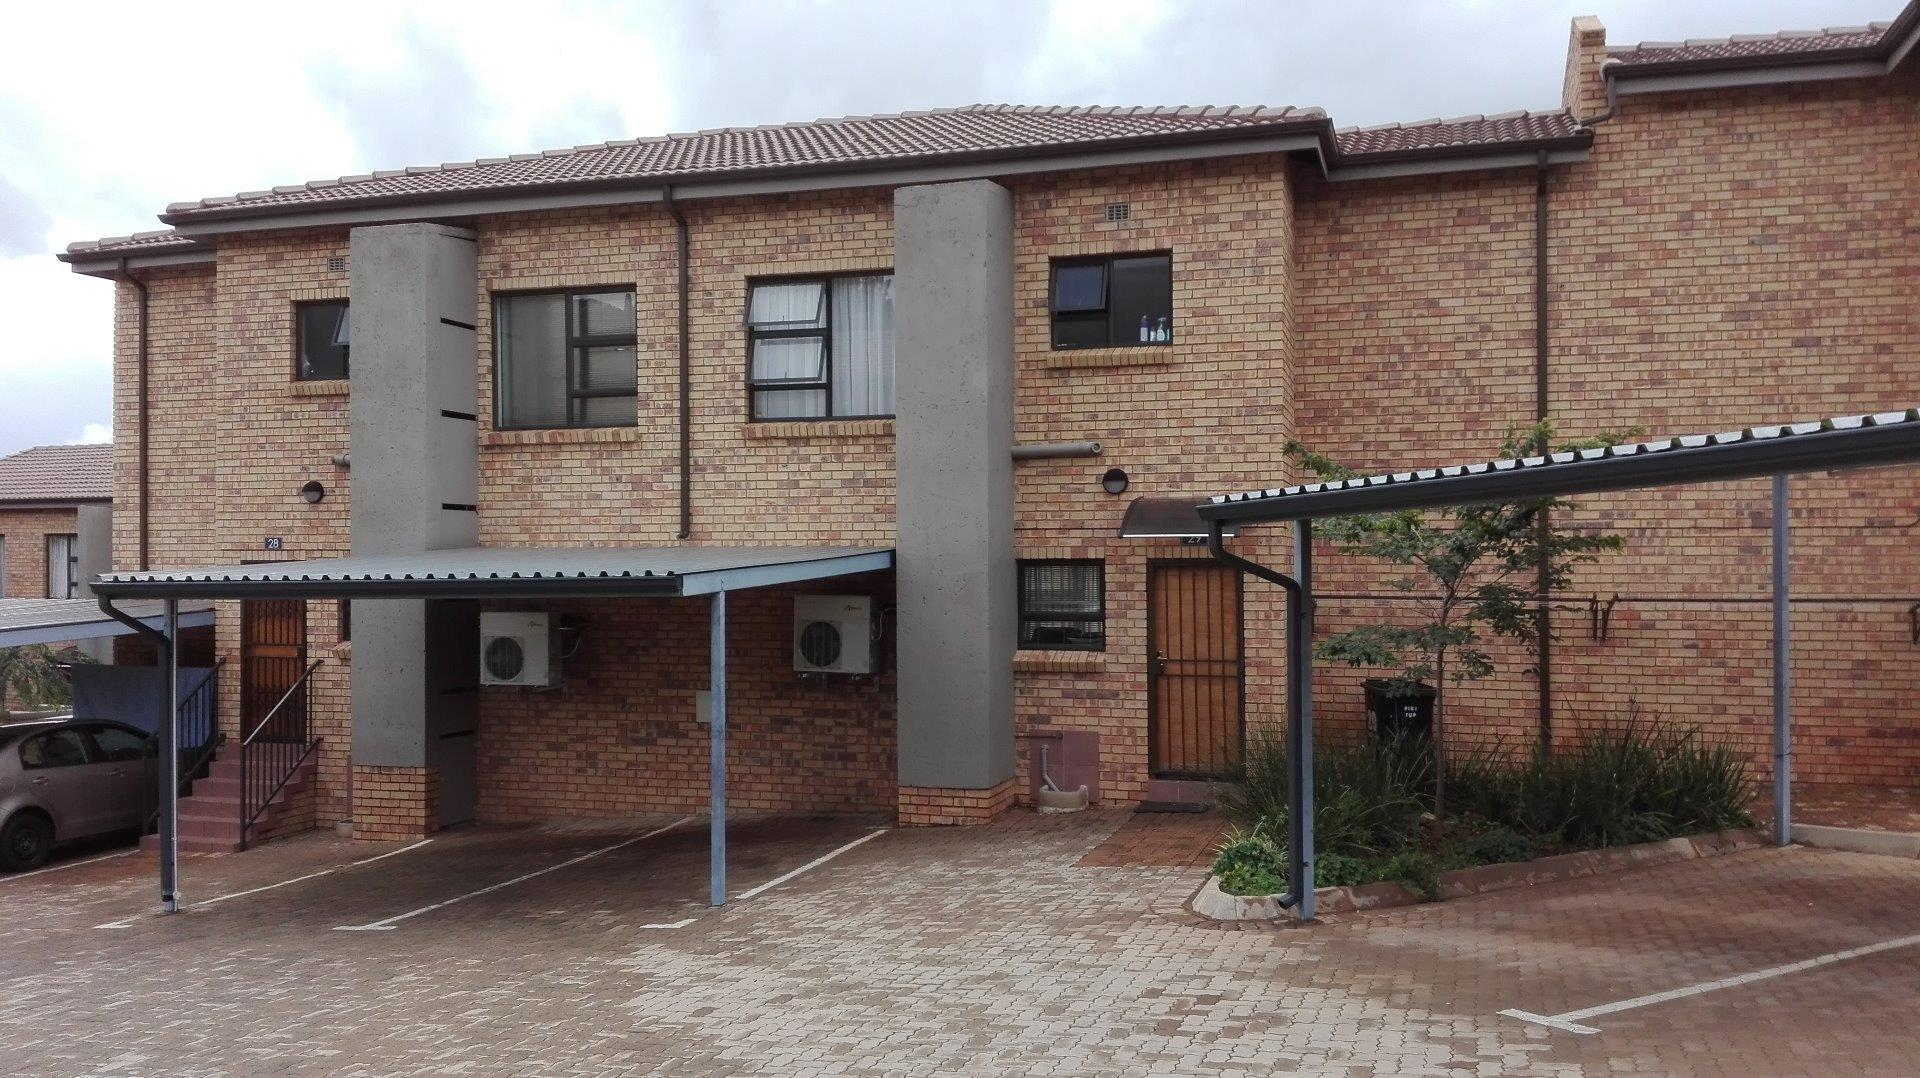 3 Bedroom  Townhouse for Sale in Roodepoort - Gauteng